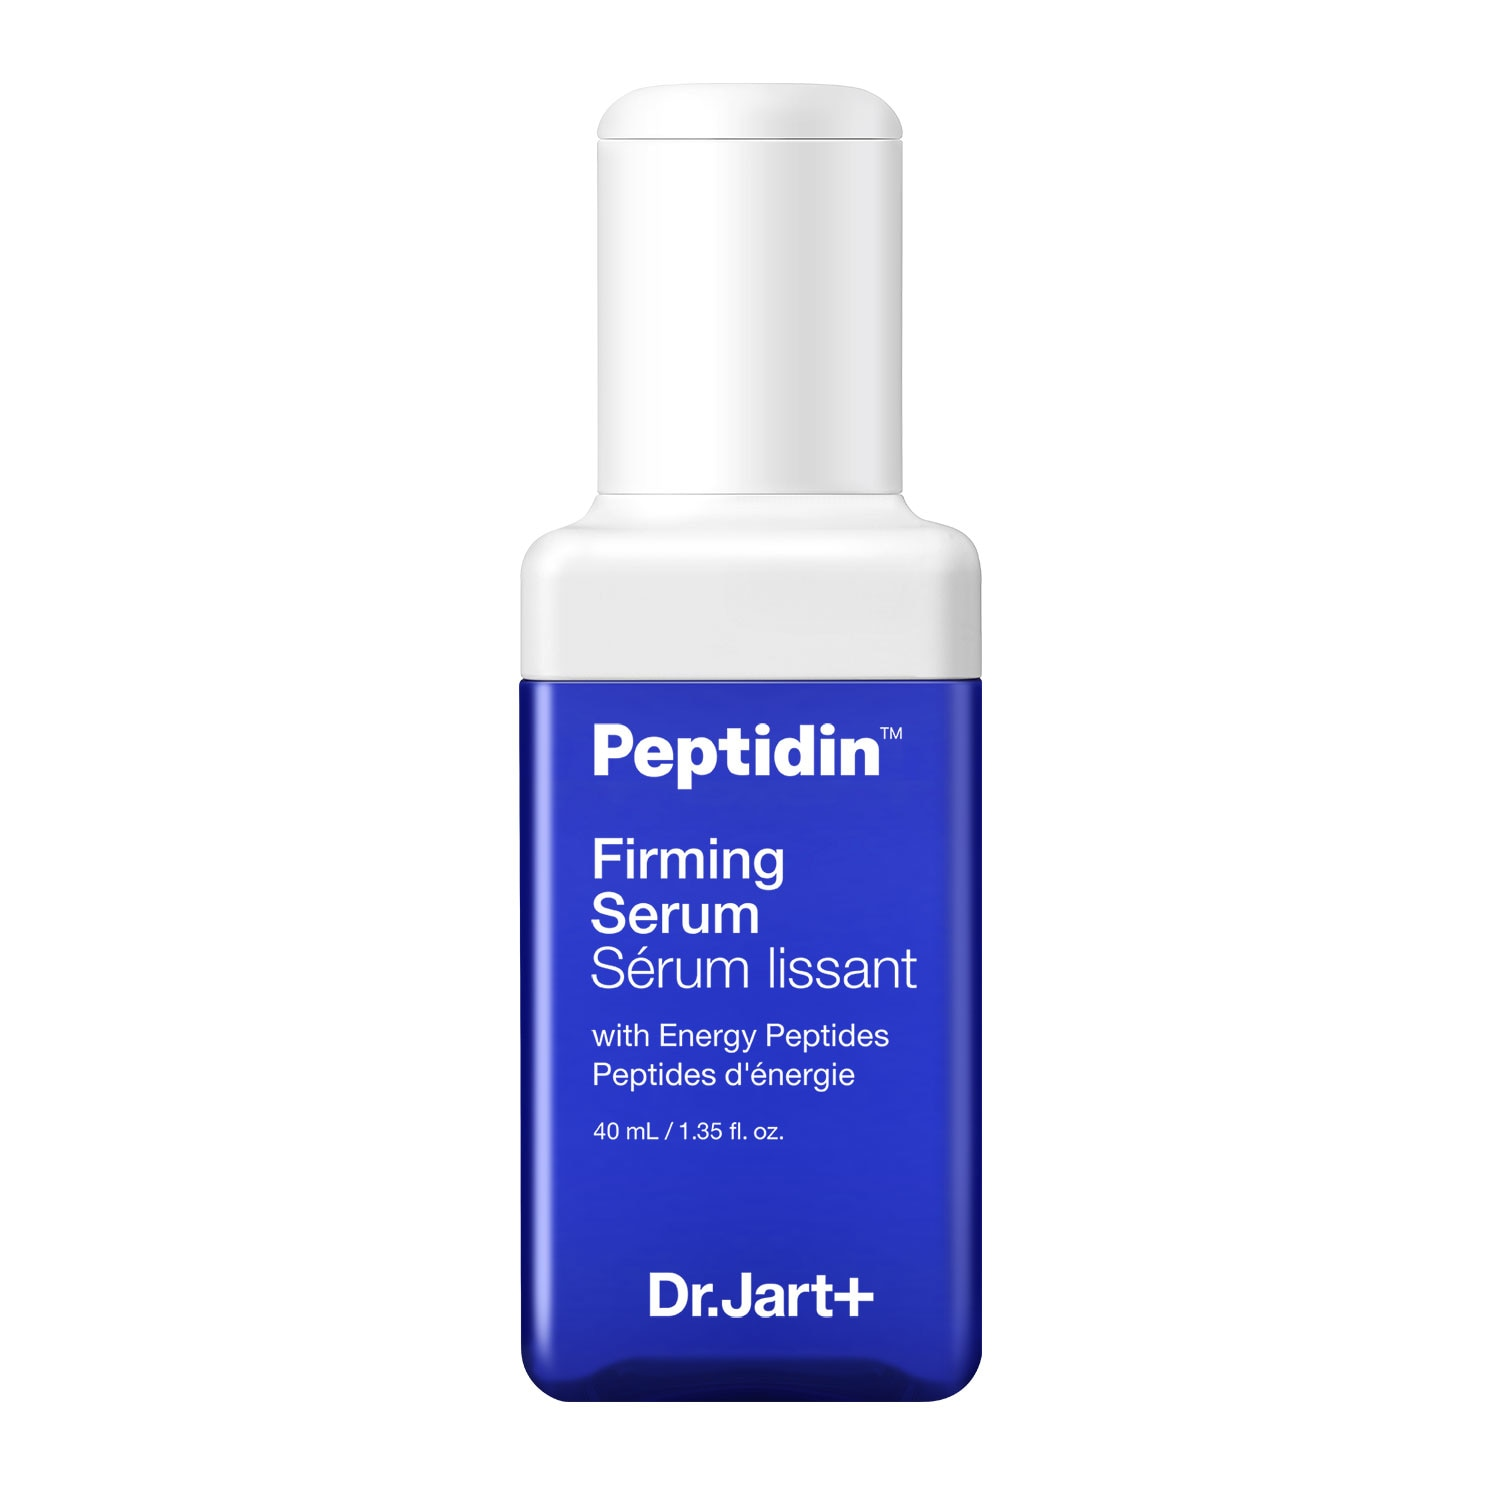 PEPTIDIN™ FIRMING SERUM WITH ENERGY PEPTIDES 40ML